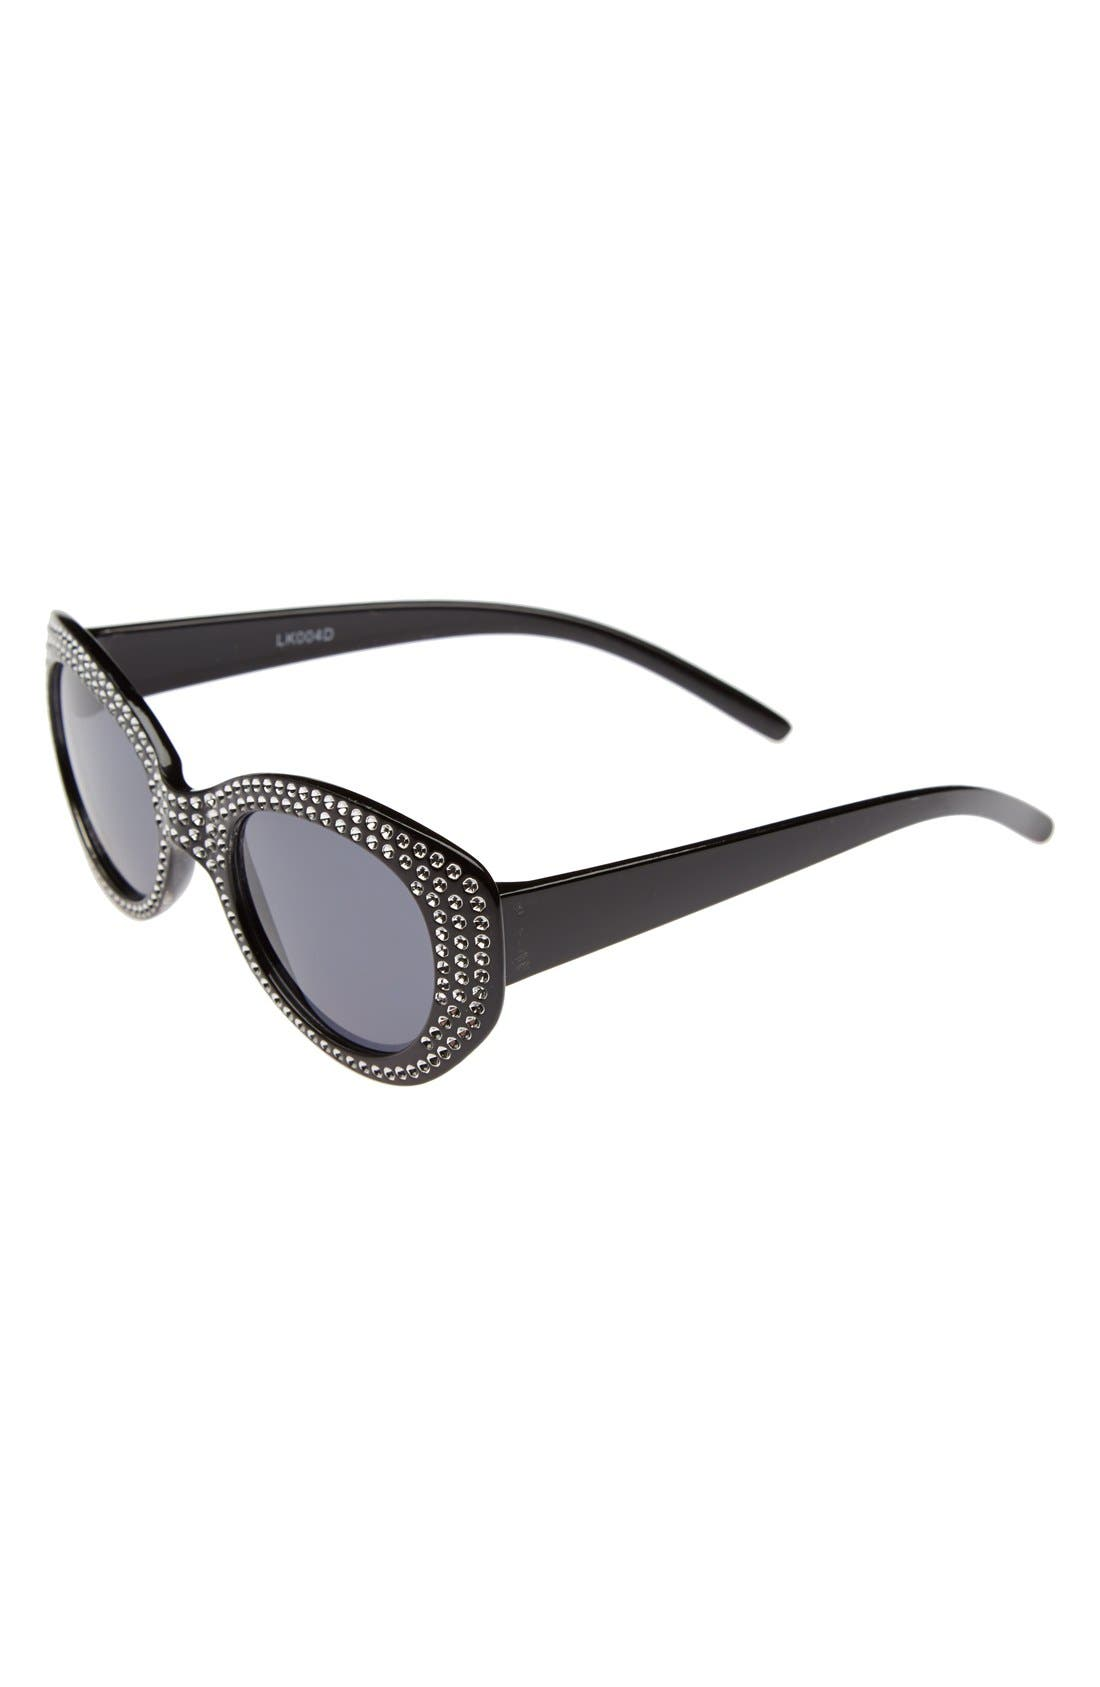 Main Image - Loose Leaf Eyewear Crystal Trim Sunglasses (Toddler Girls)